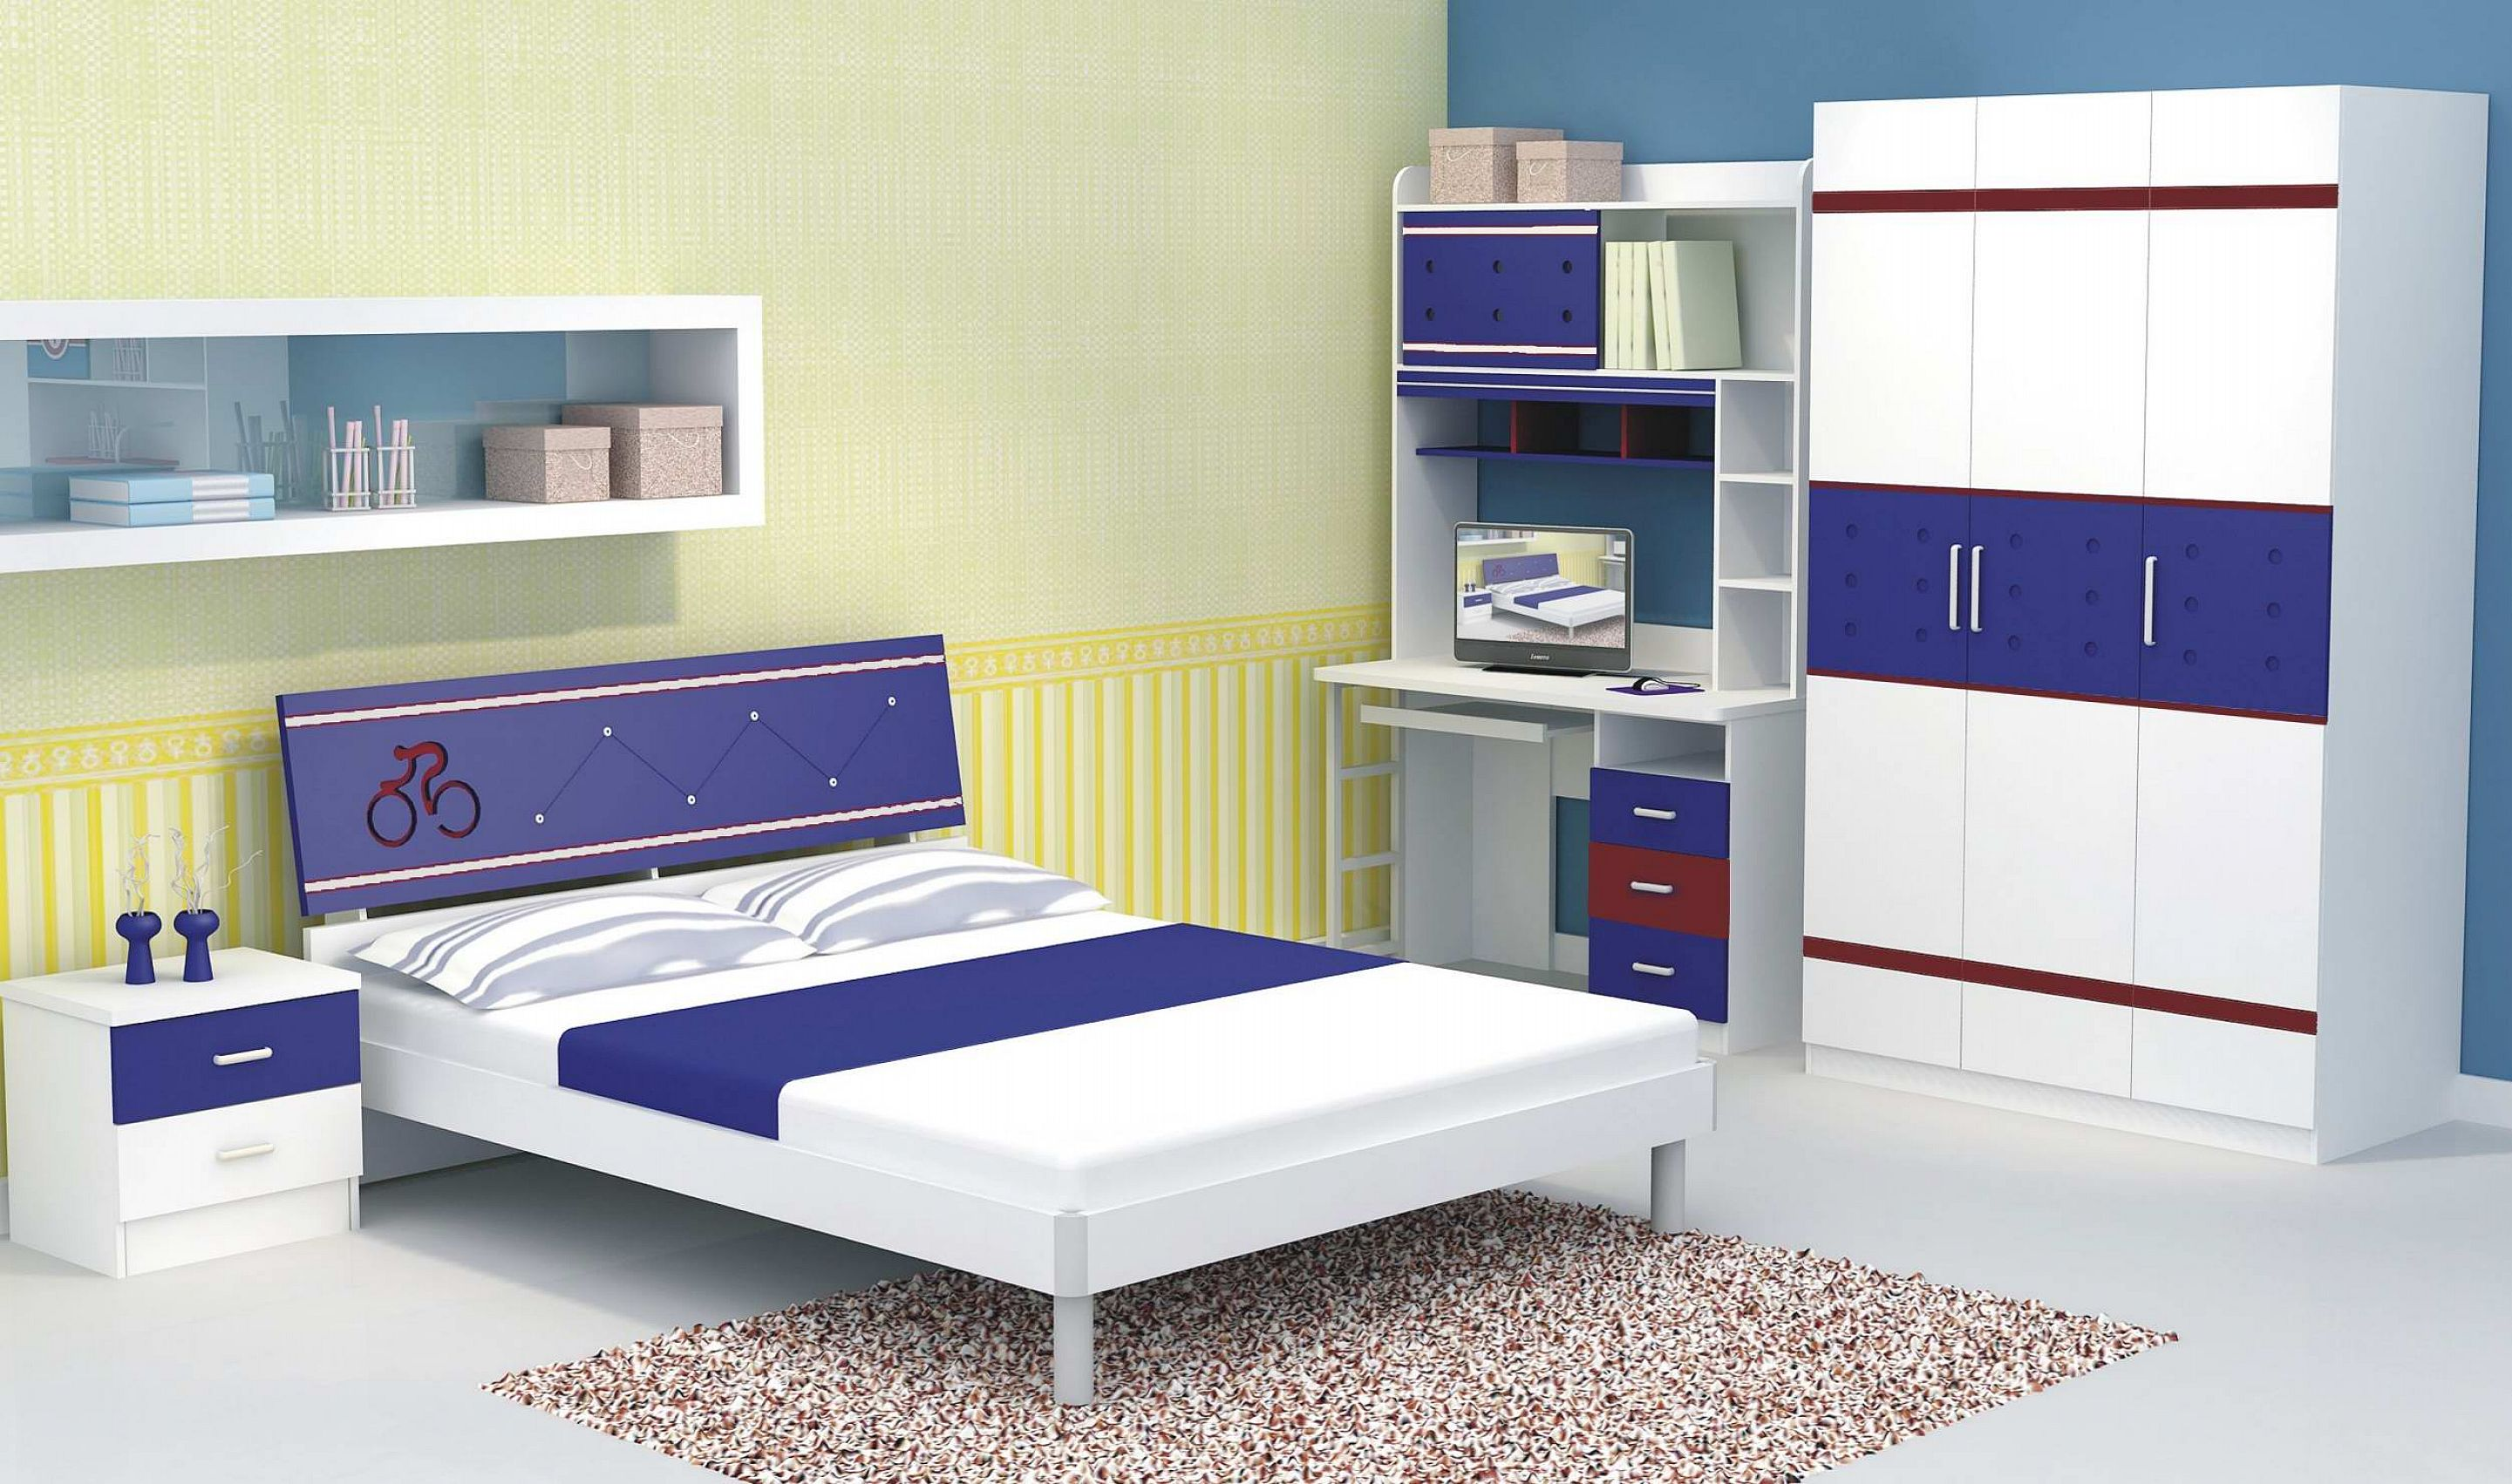 Solid wood bedroom furniture for kids 20 tips for best for Furniture for toddlers room